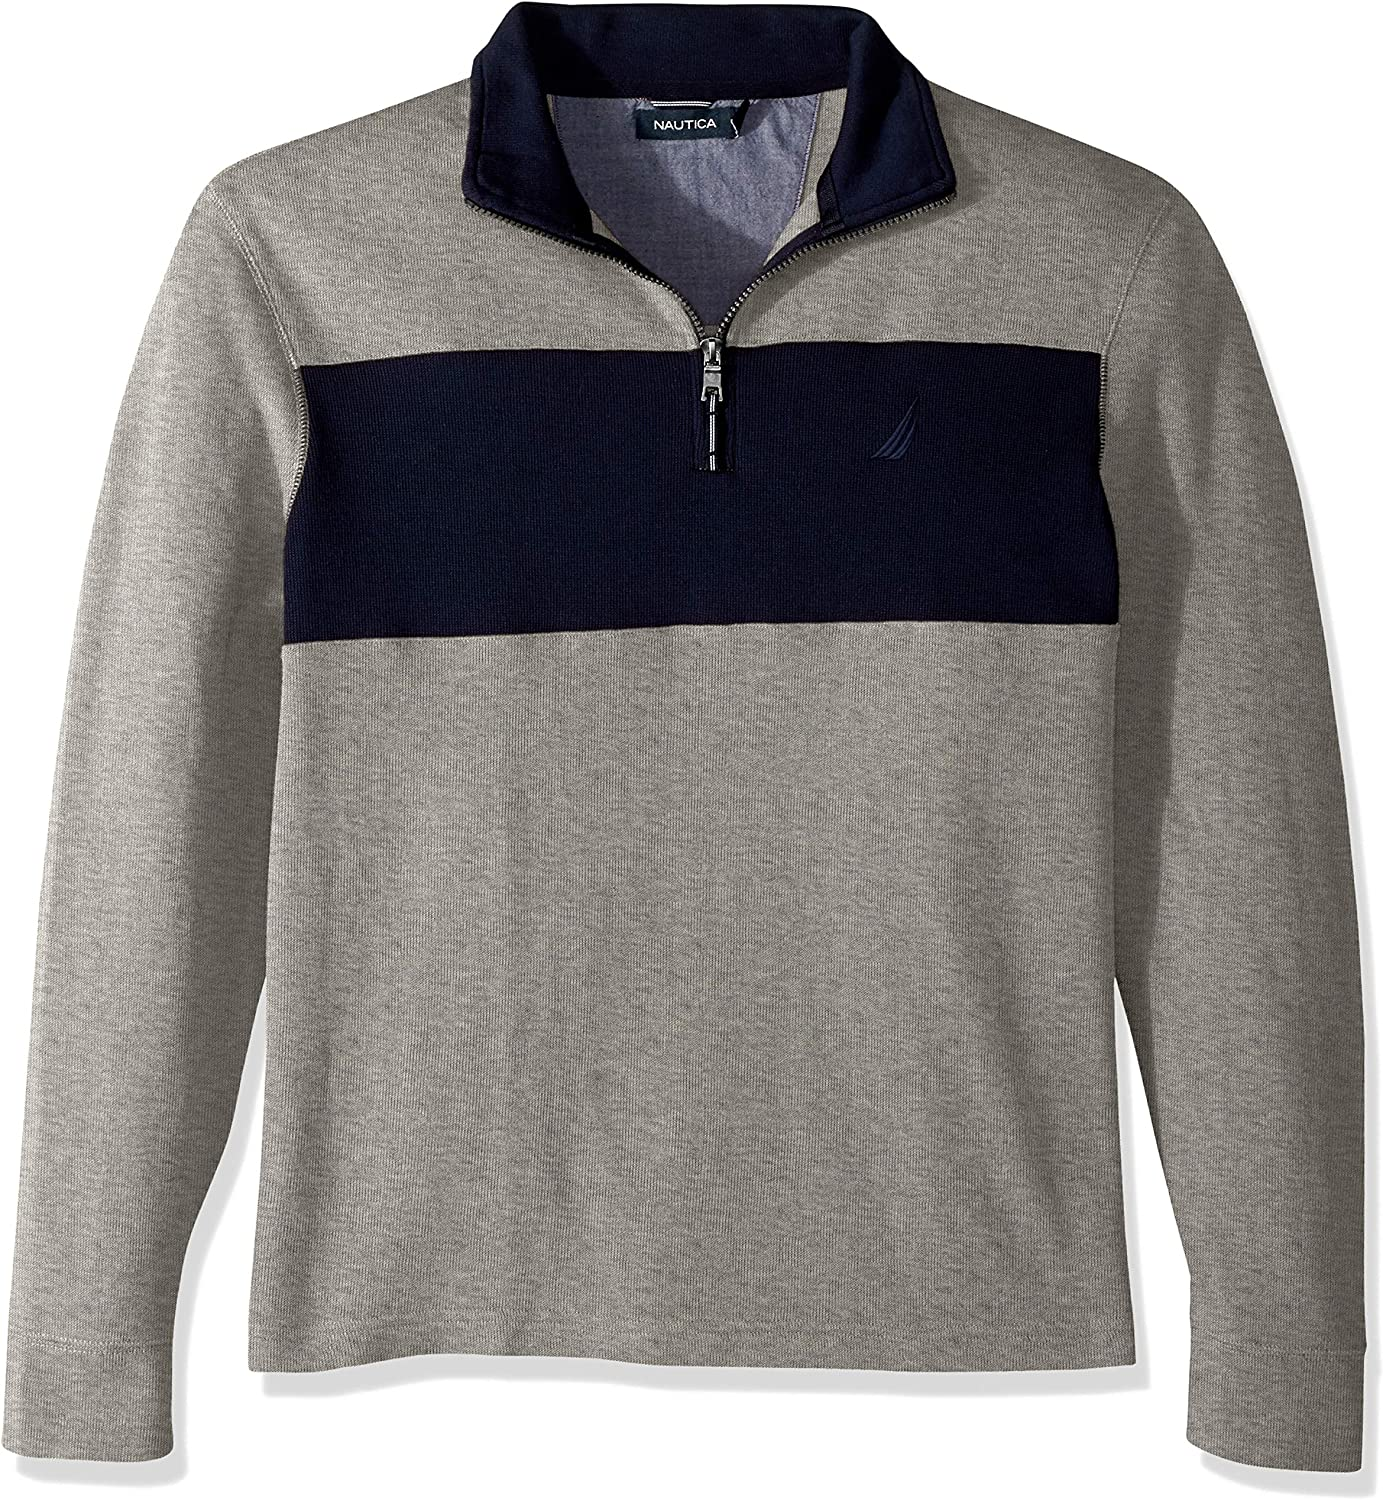 Nautica French Rib Sudadera, Gris (Grey Heather 0gh), X-Large ...